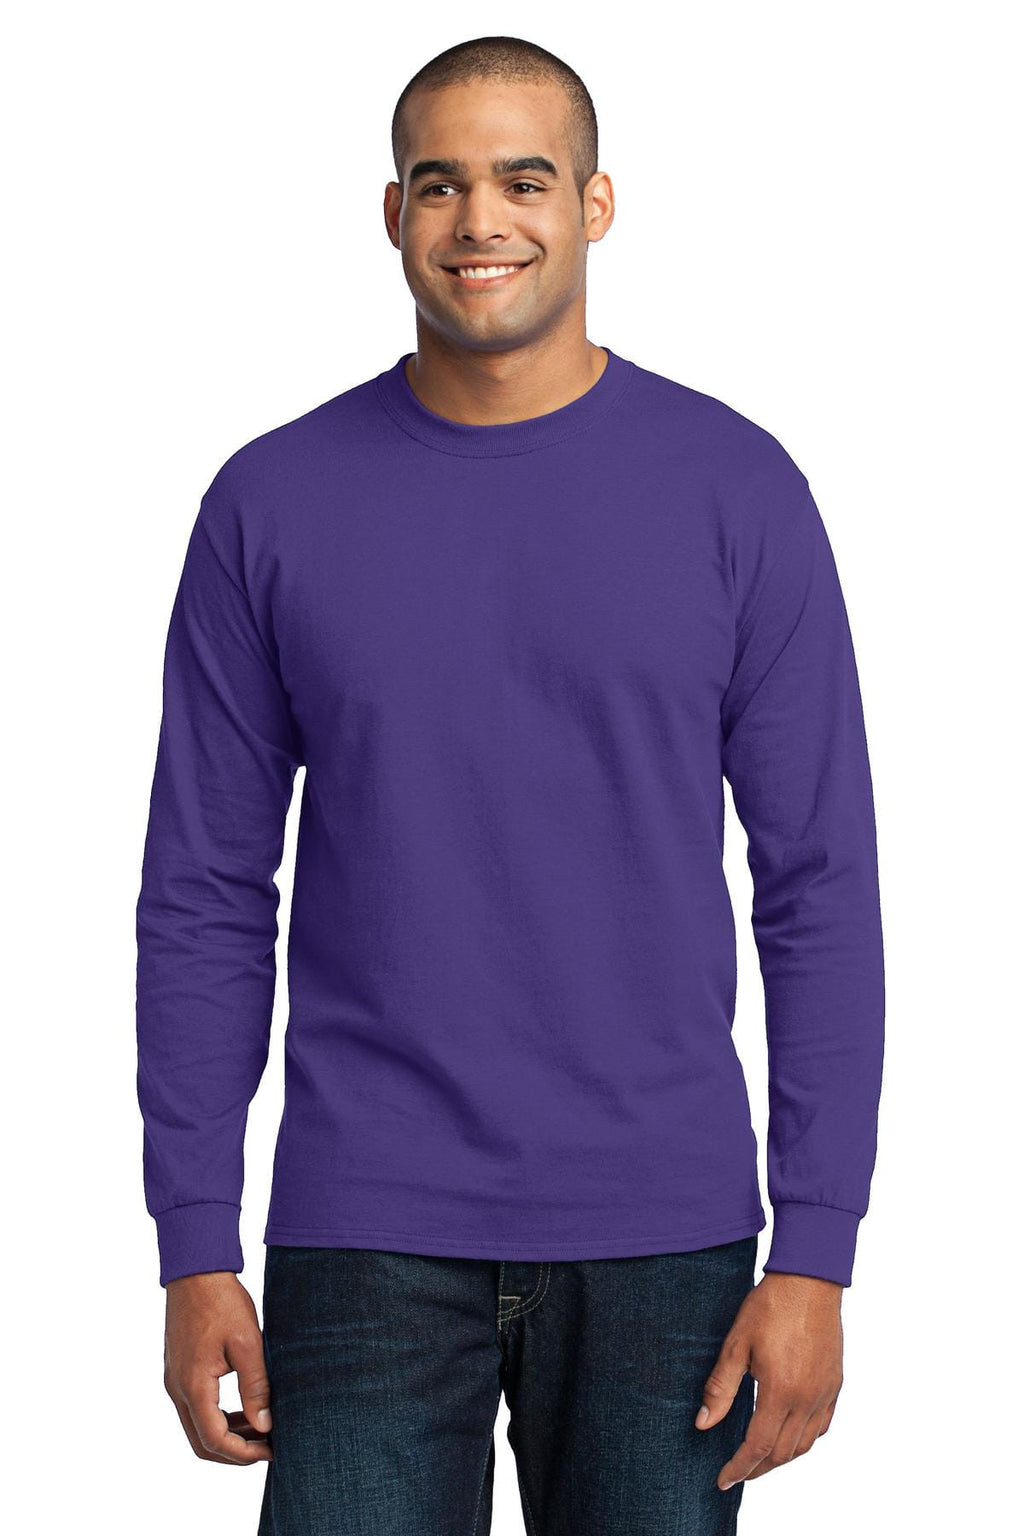 Port & Company 50/50 Poly/Cotton Tall Long Sleeve Tee-1